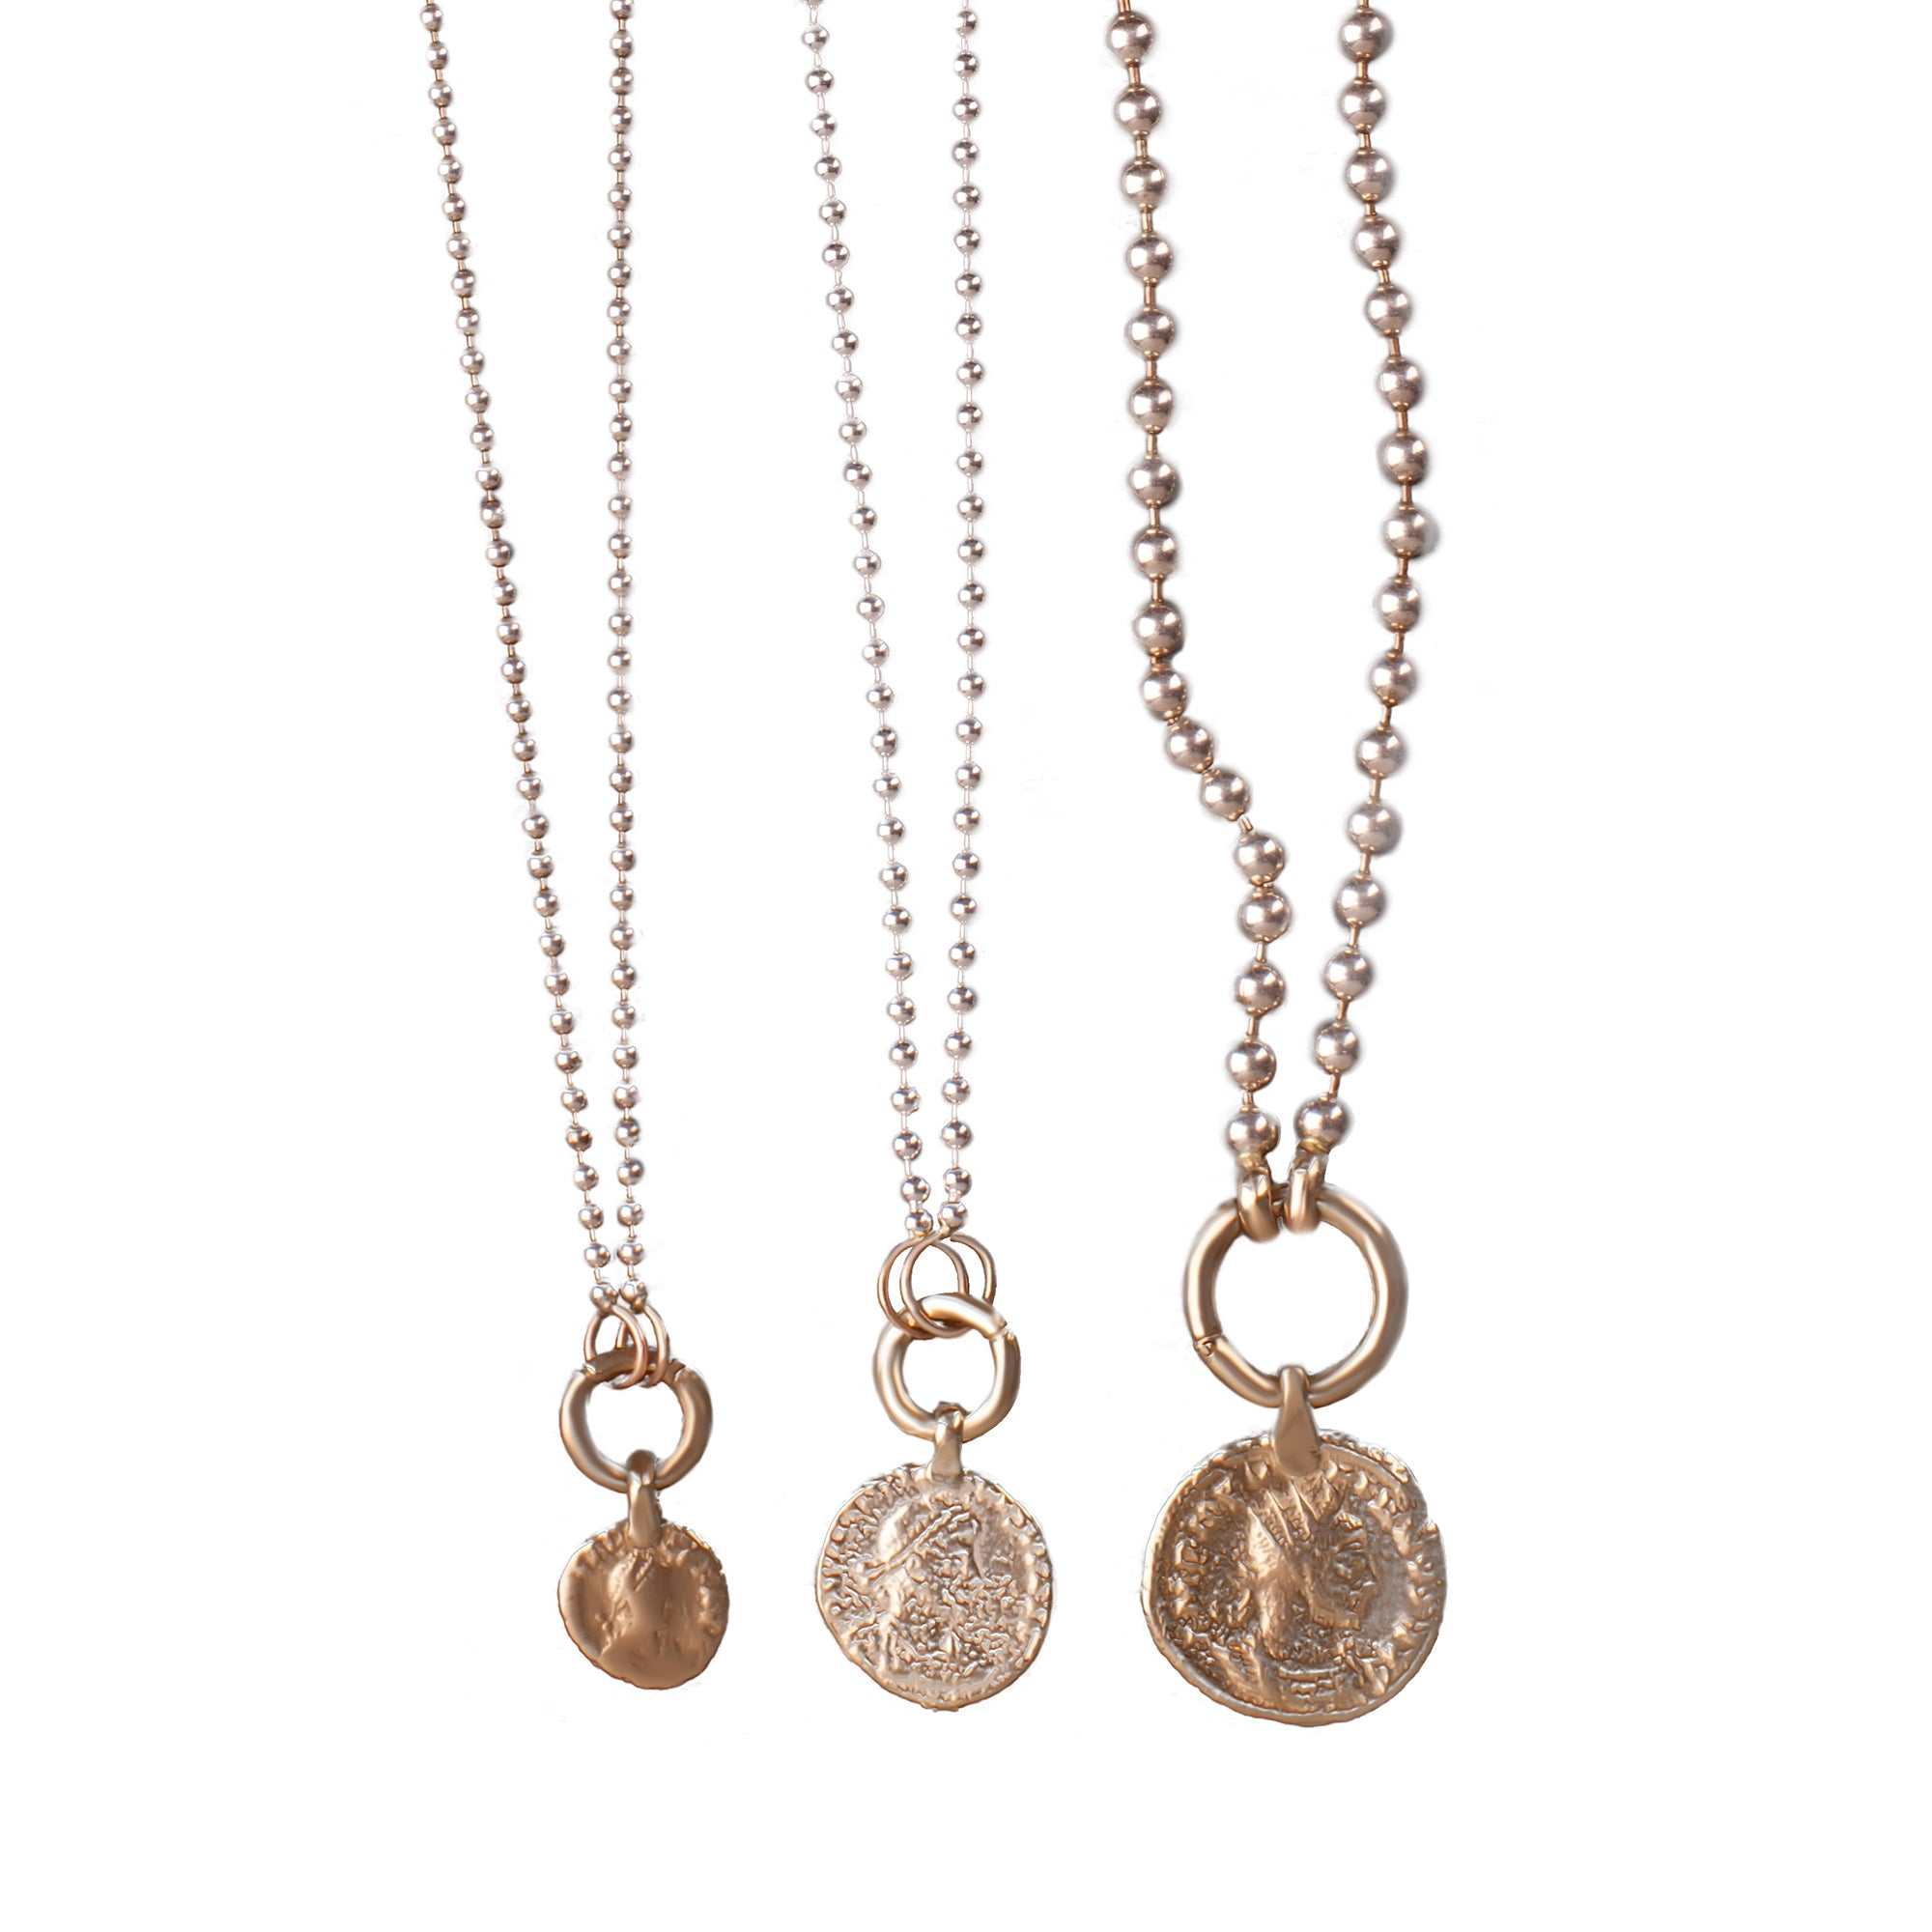 Silver necklace with 14k gold small coin pendant